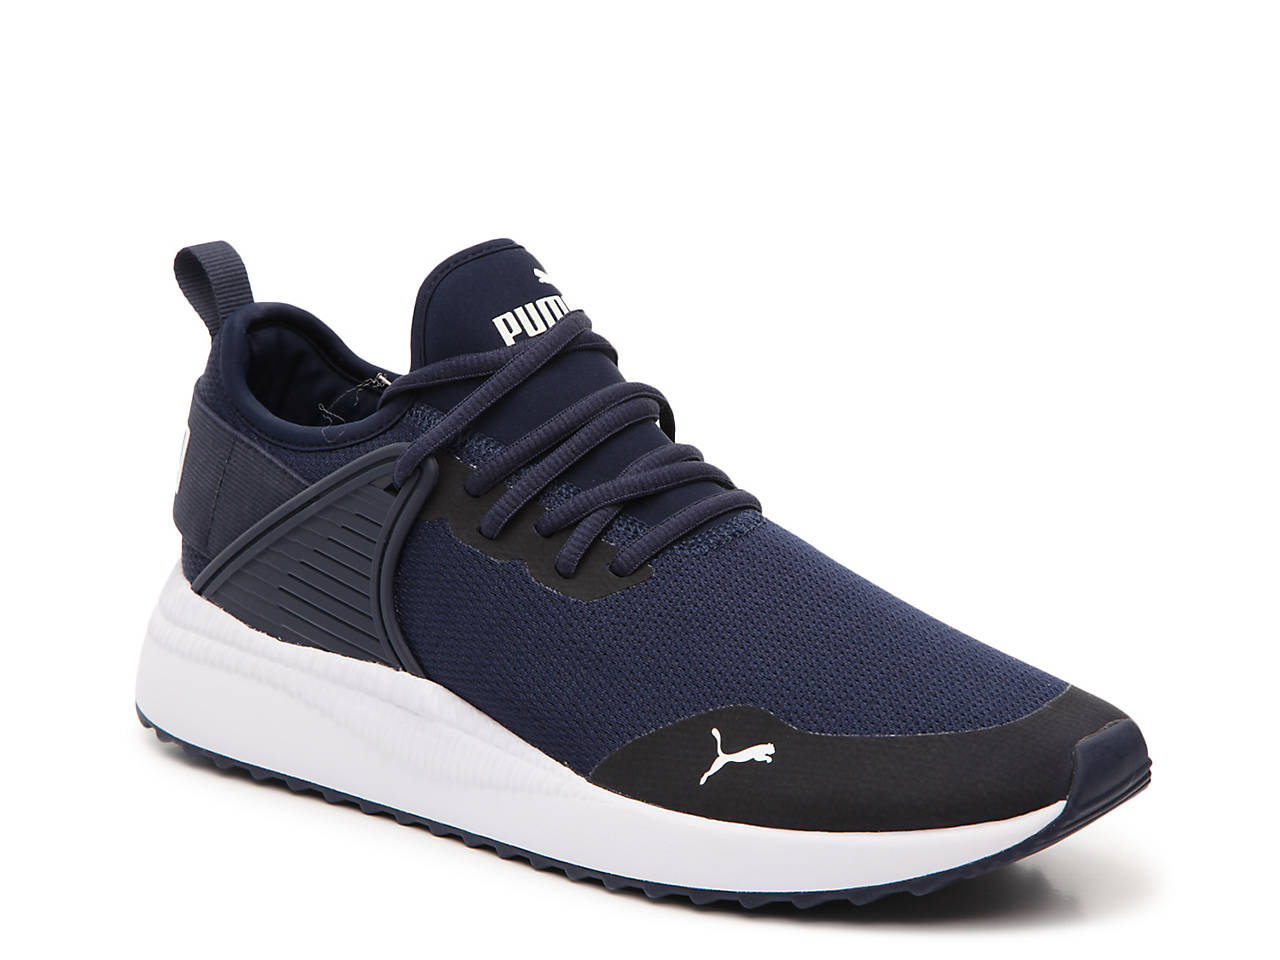 Pacer Next Cage Sneaker Men's